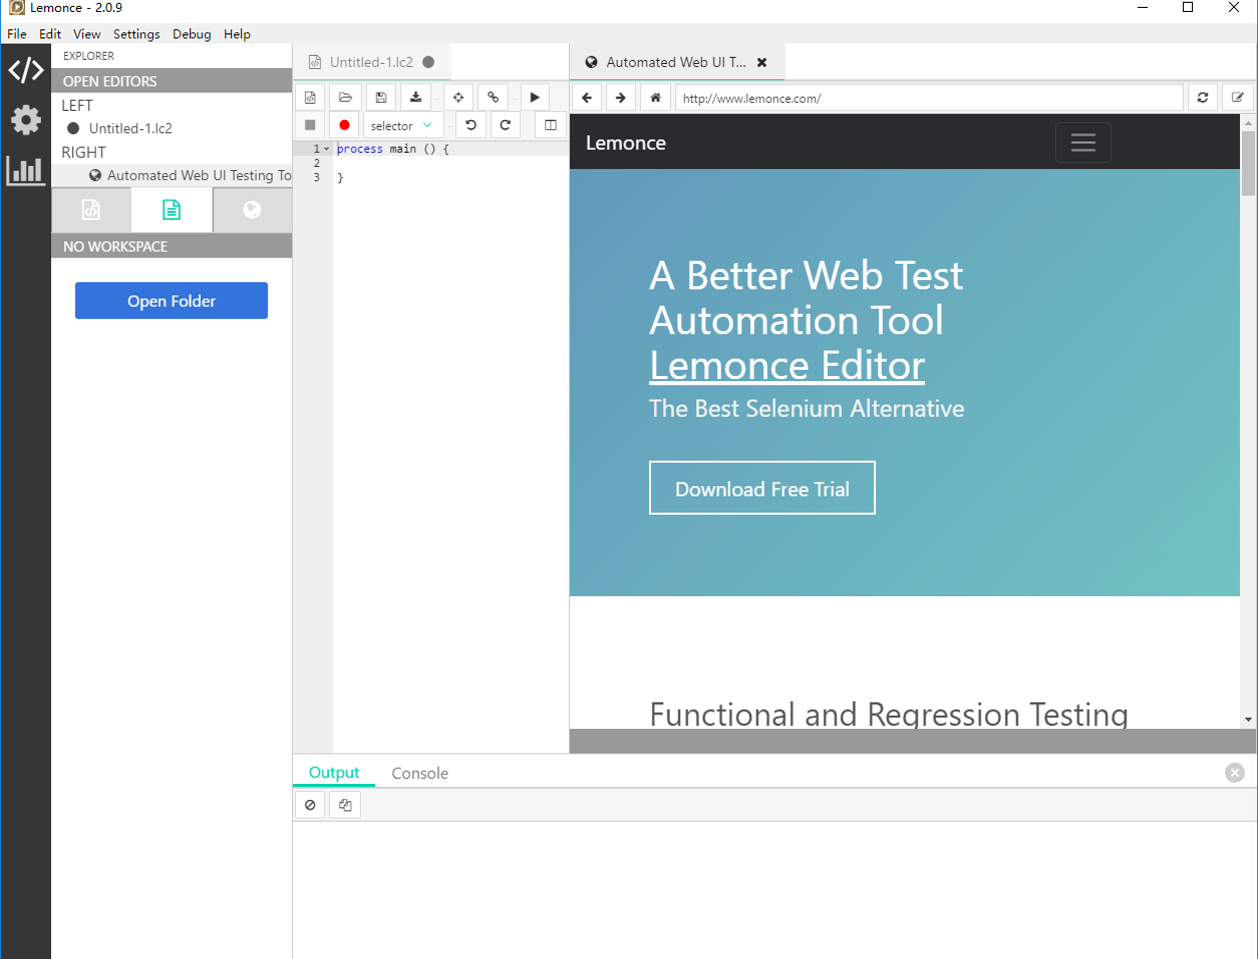 Automation Testing Tools for Web Applications - Lemonce Editor ...